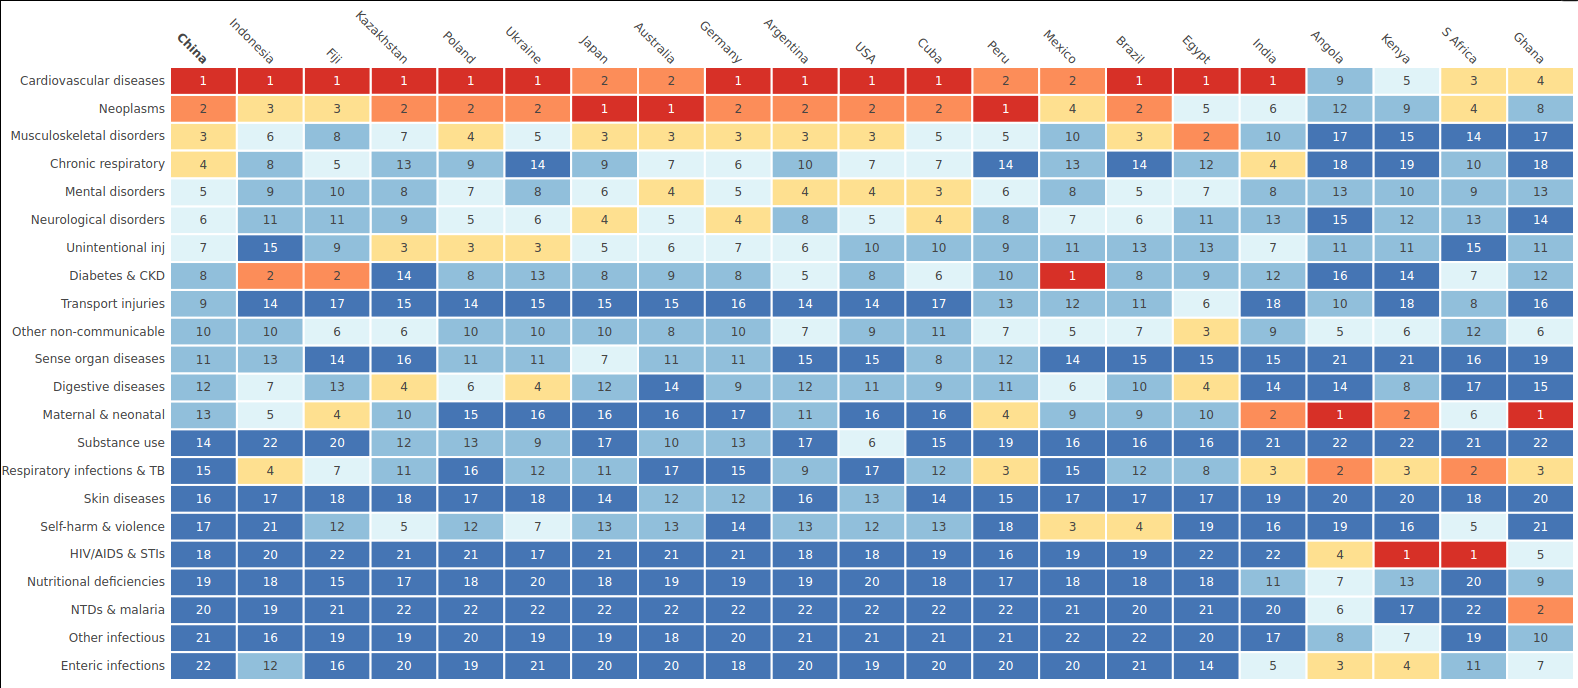 Heatmap showing rankings of causes of DALY losses by country